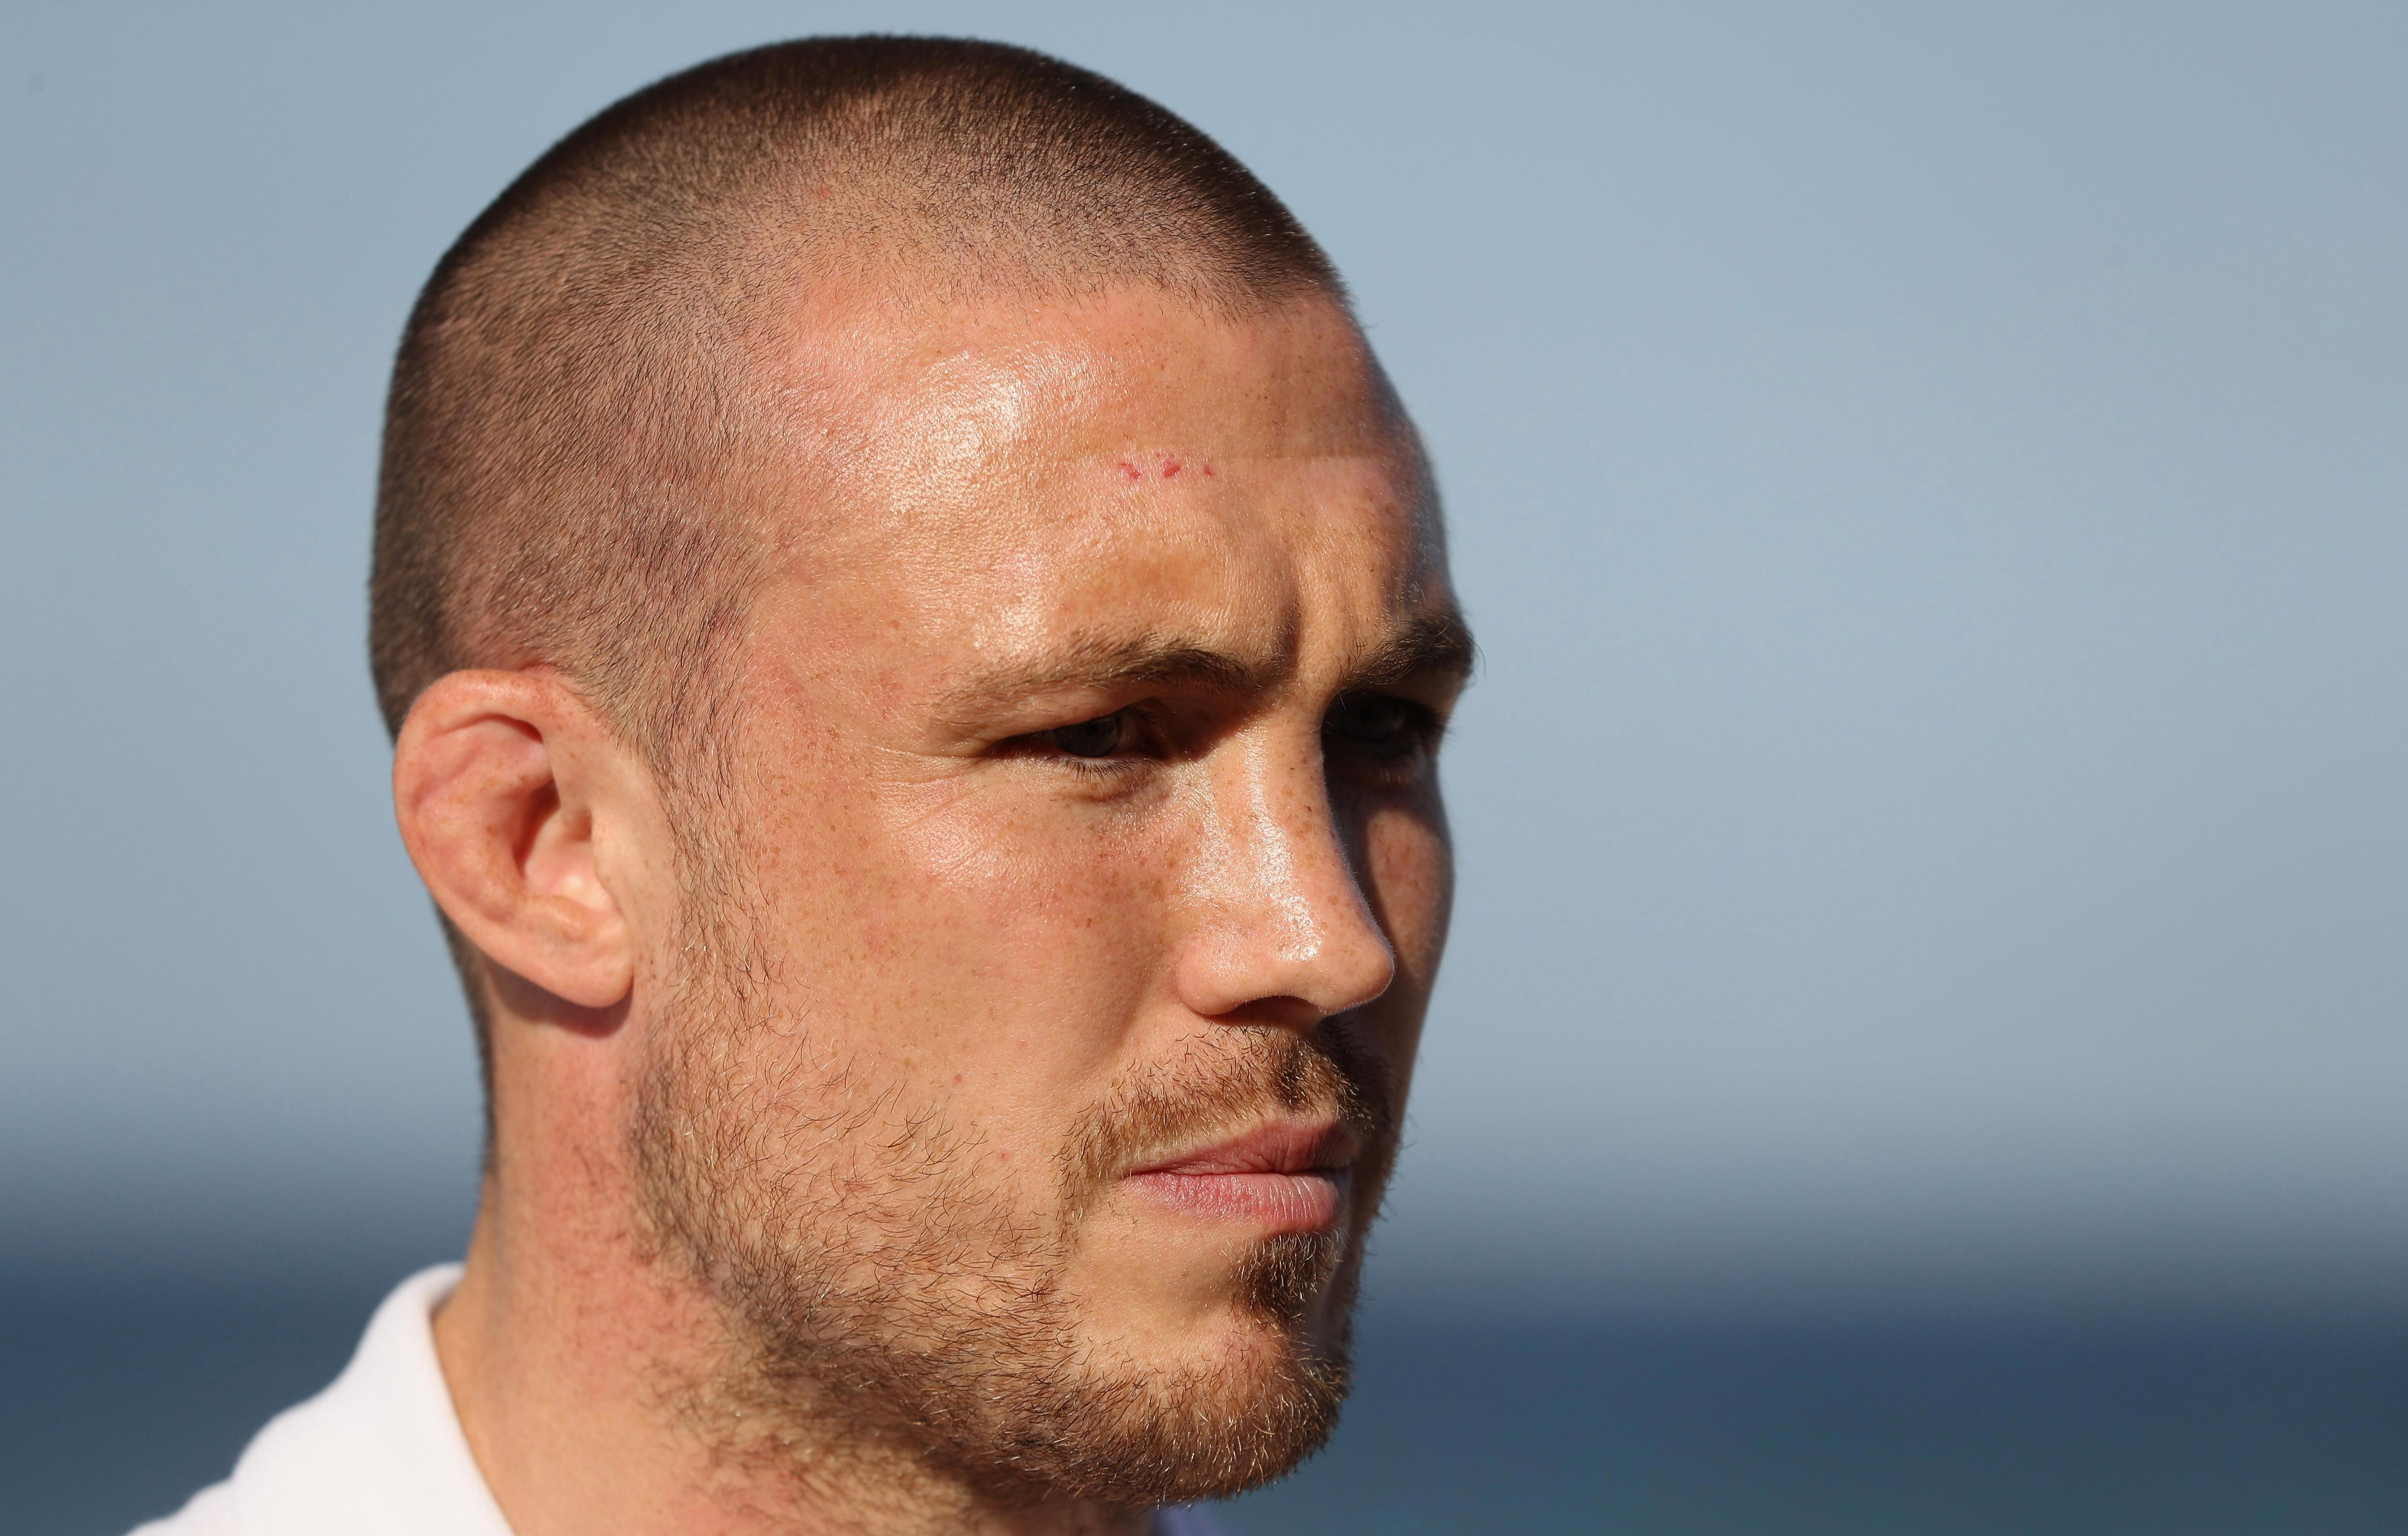 England star Mike Brown has come under criticism by a minority of Red Rose fans - and says he will take on any critics